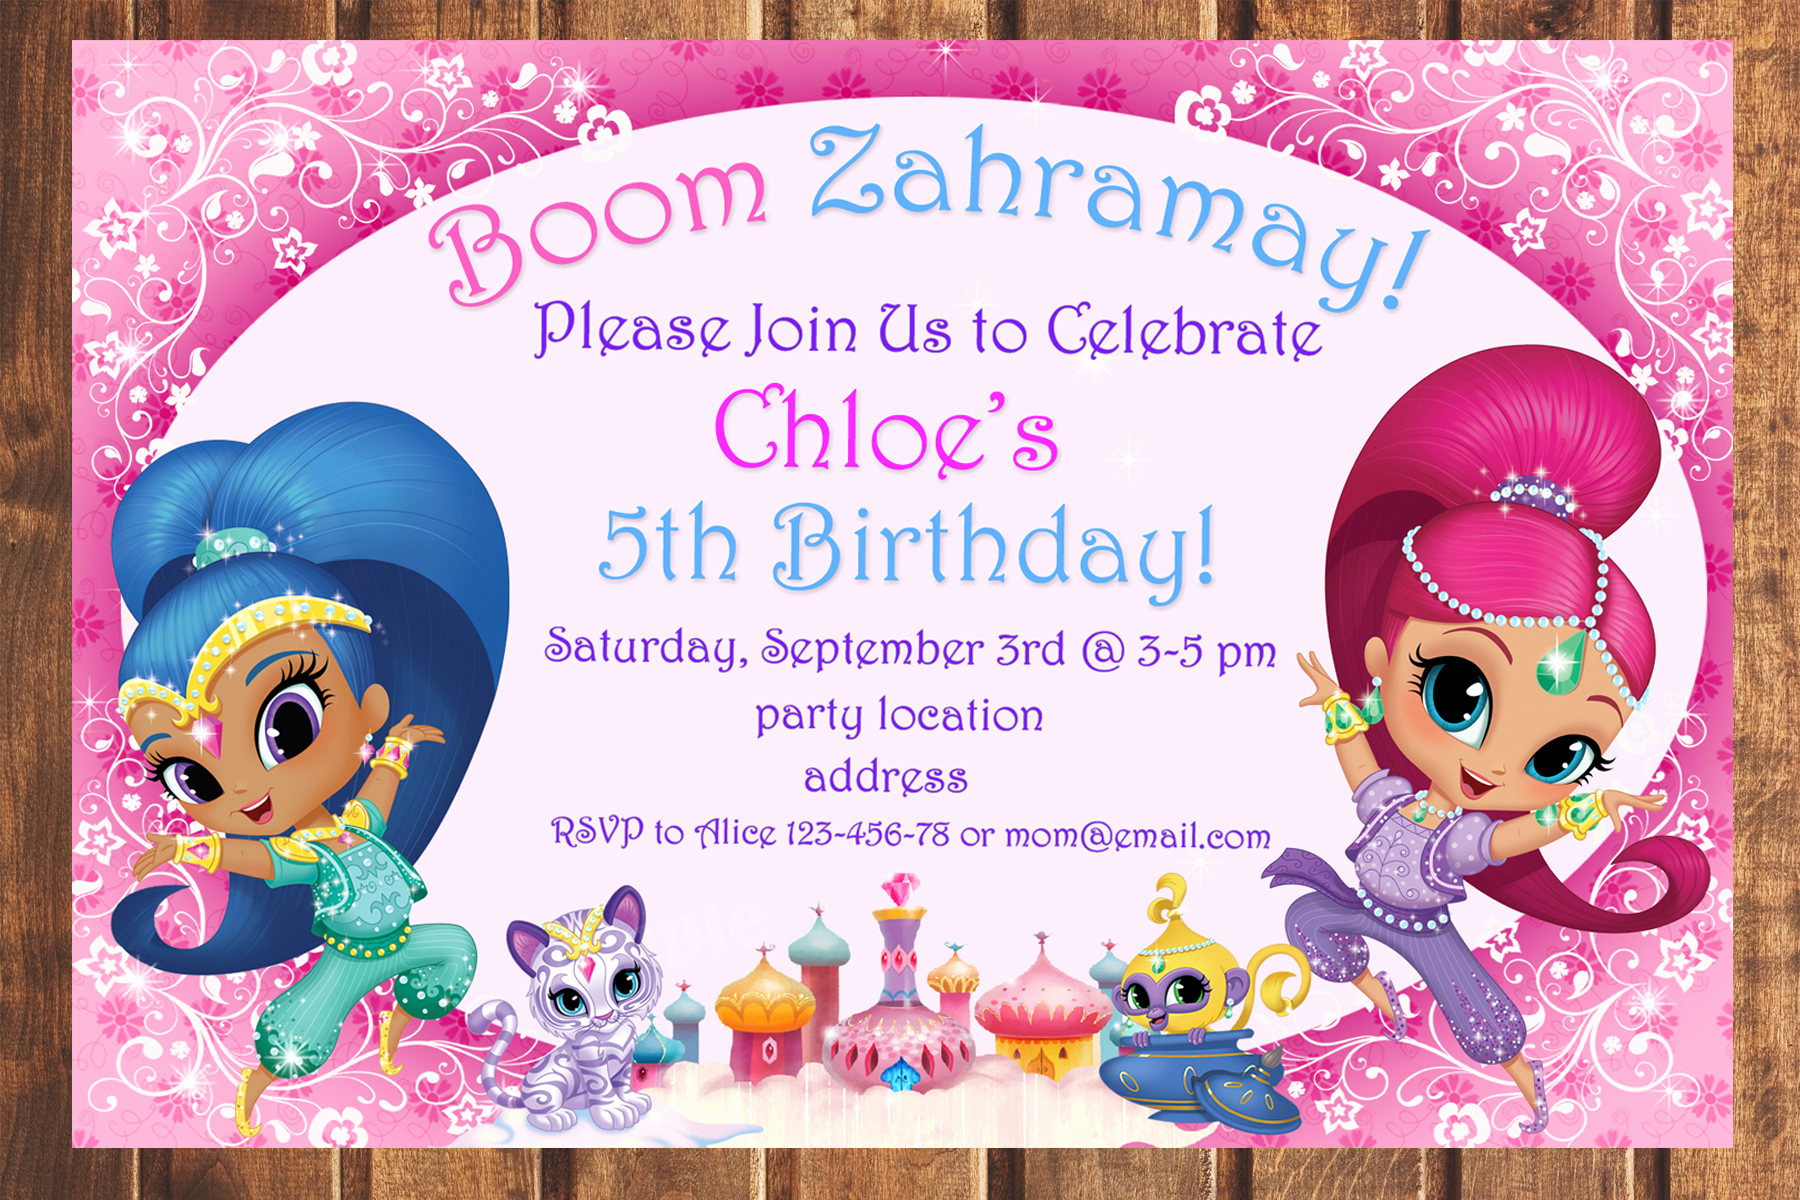 Shimmer and Shine Birthday Invitation Inspirational Sale Shimmer and Shine Birthday Invitationshimmer and Shine